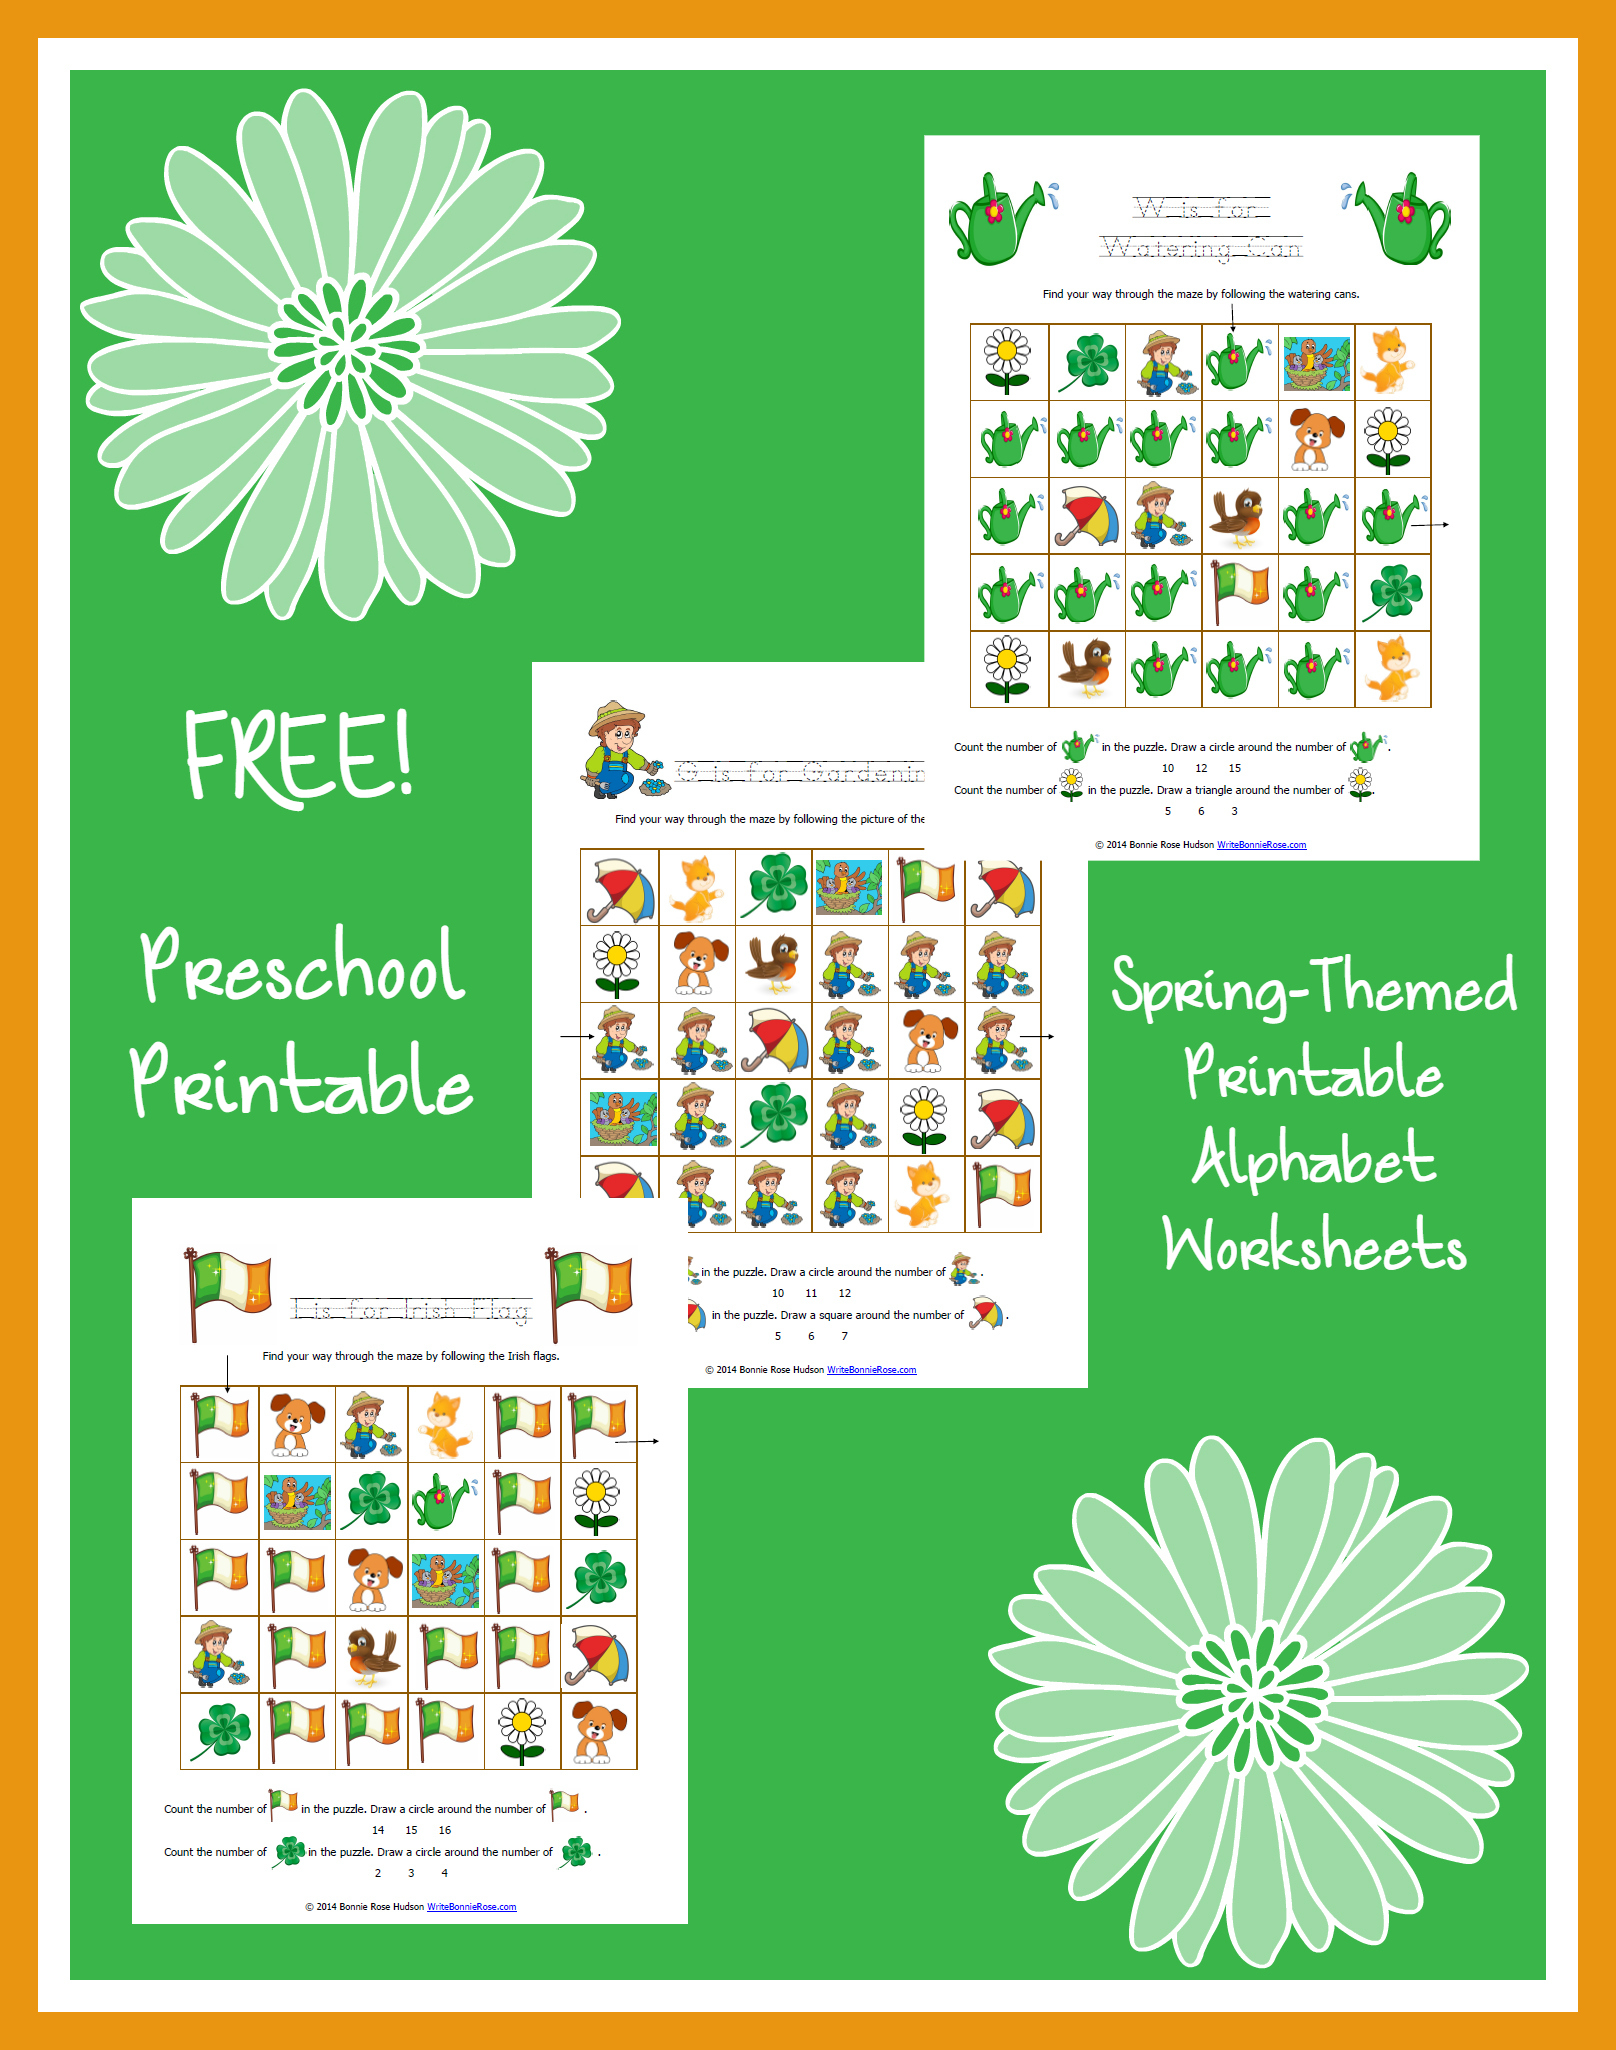 Free Spring Themed Printable Alphabet Worksheets For Preschool